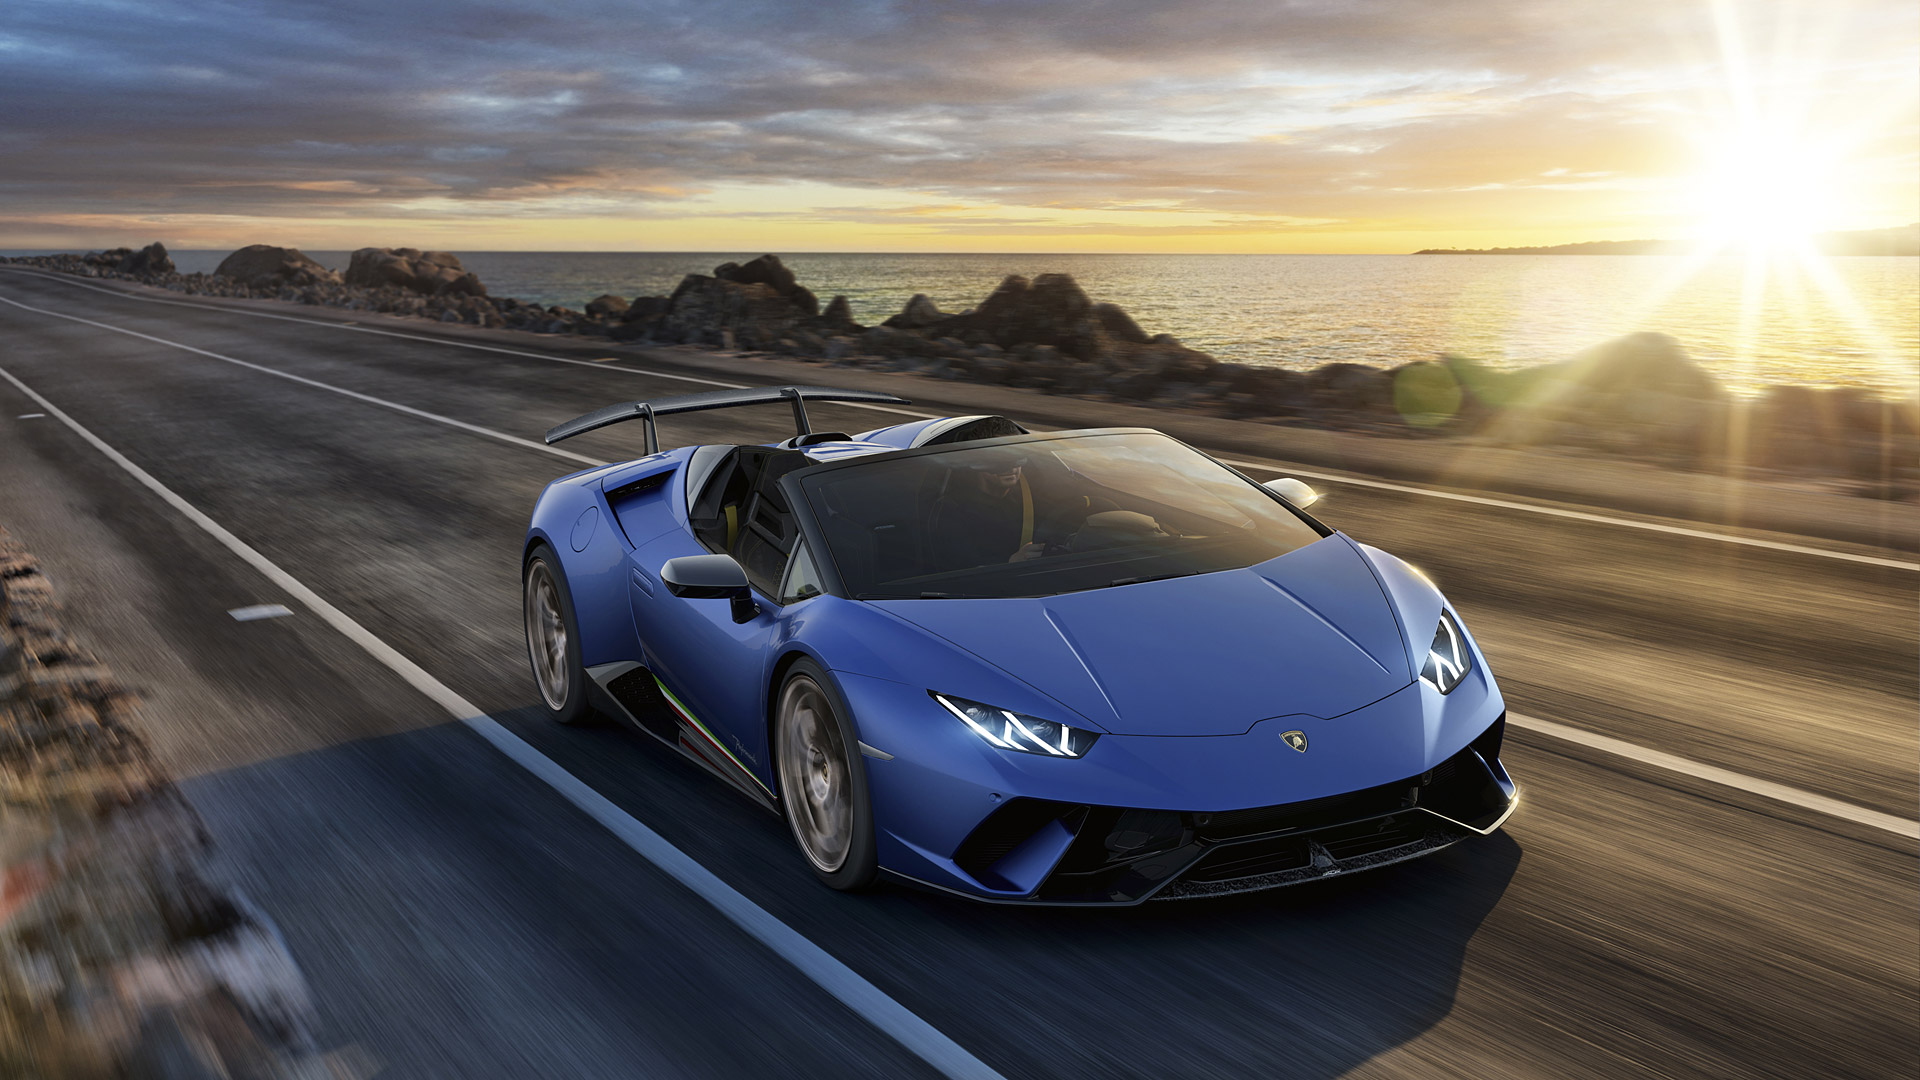 2019 Lamborghini Huracan Performante Spyder Wallpapers HD Images 1920x1080